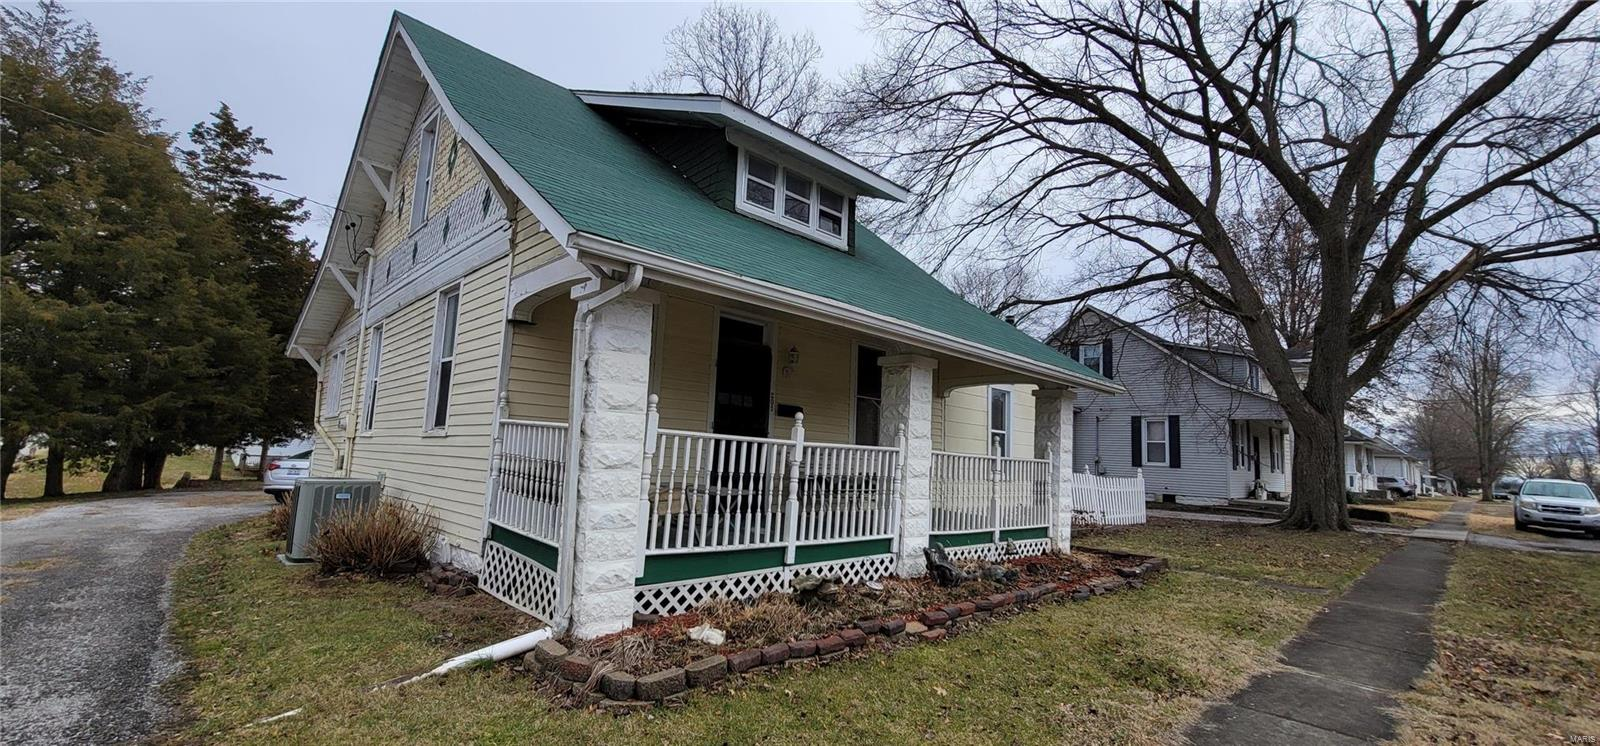 201 S Jackson Street Property Photo - New Athens, IL real estate listing